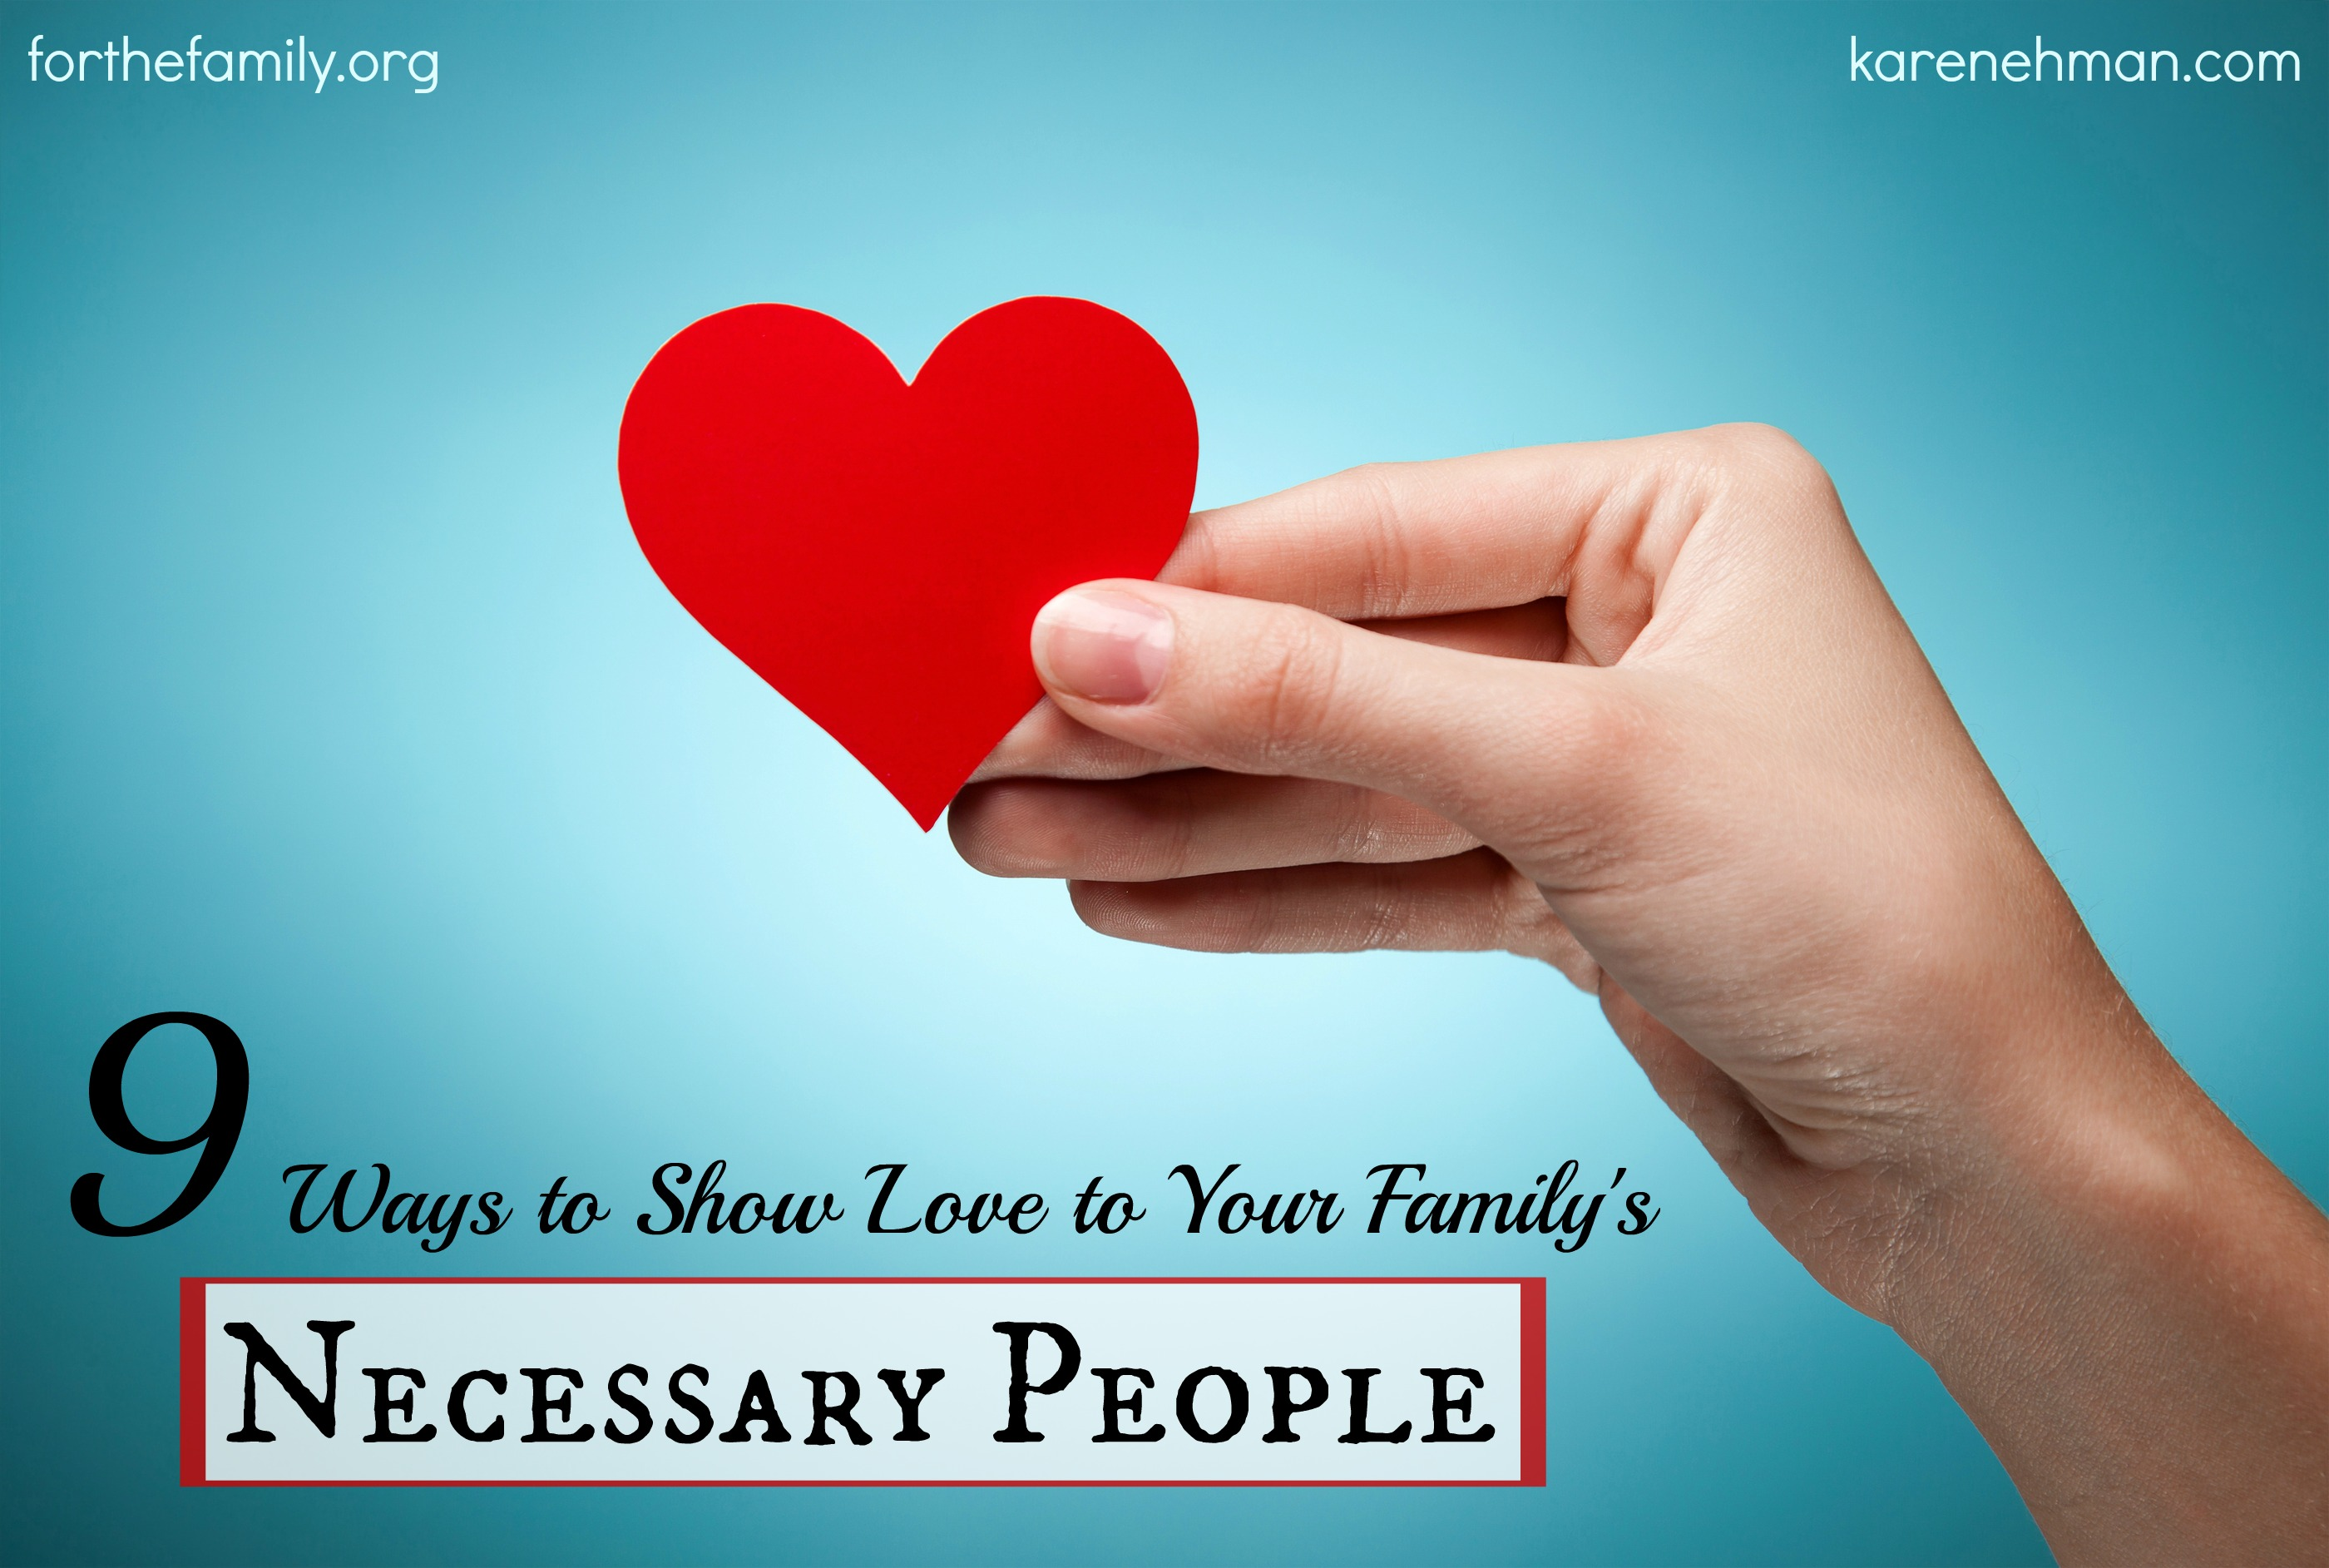 9 Ways to Show Love to Your Family's Necessary People